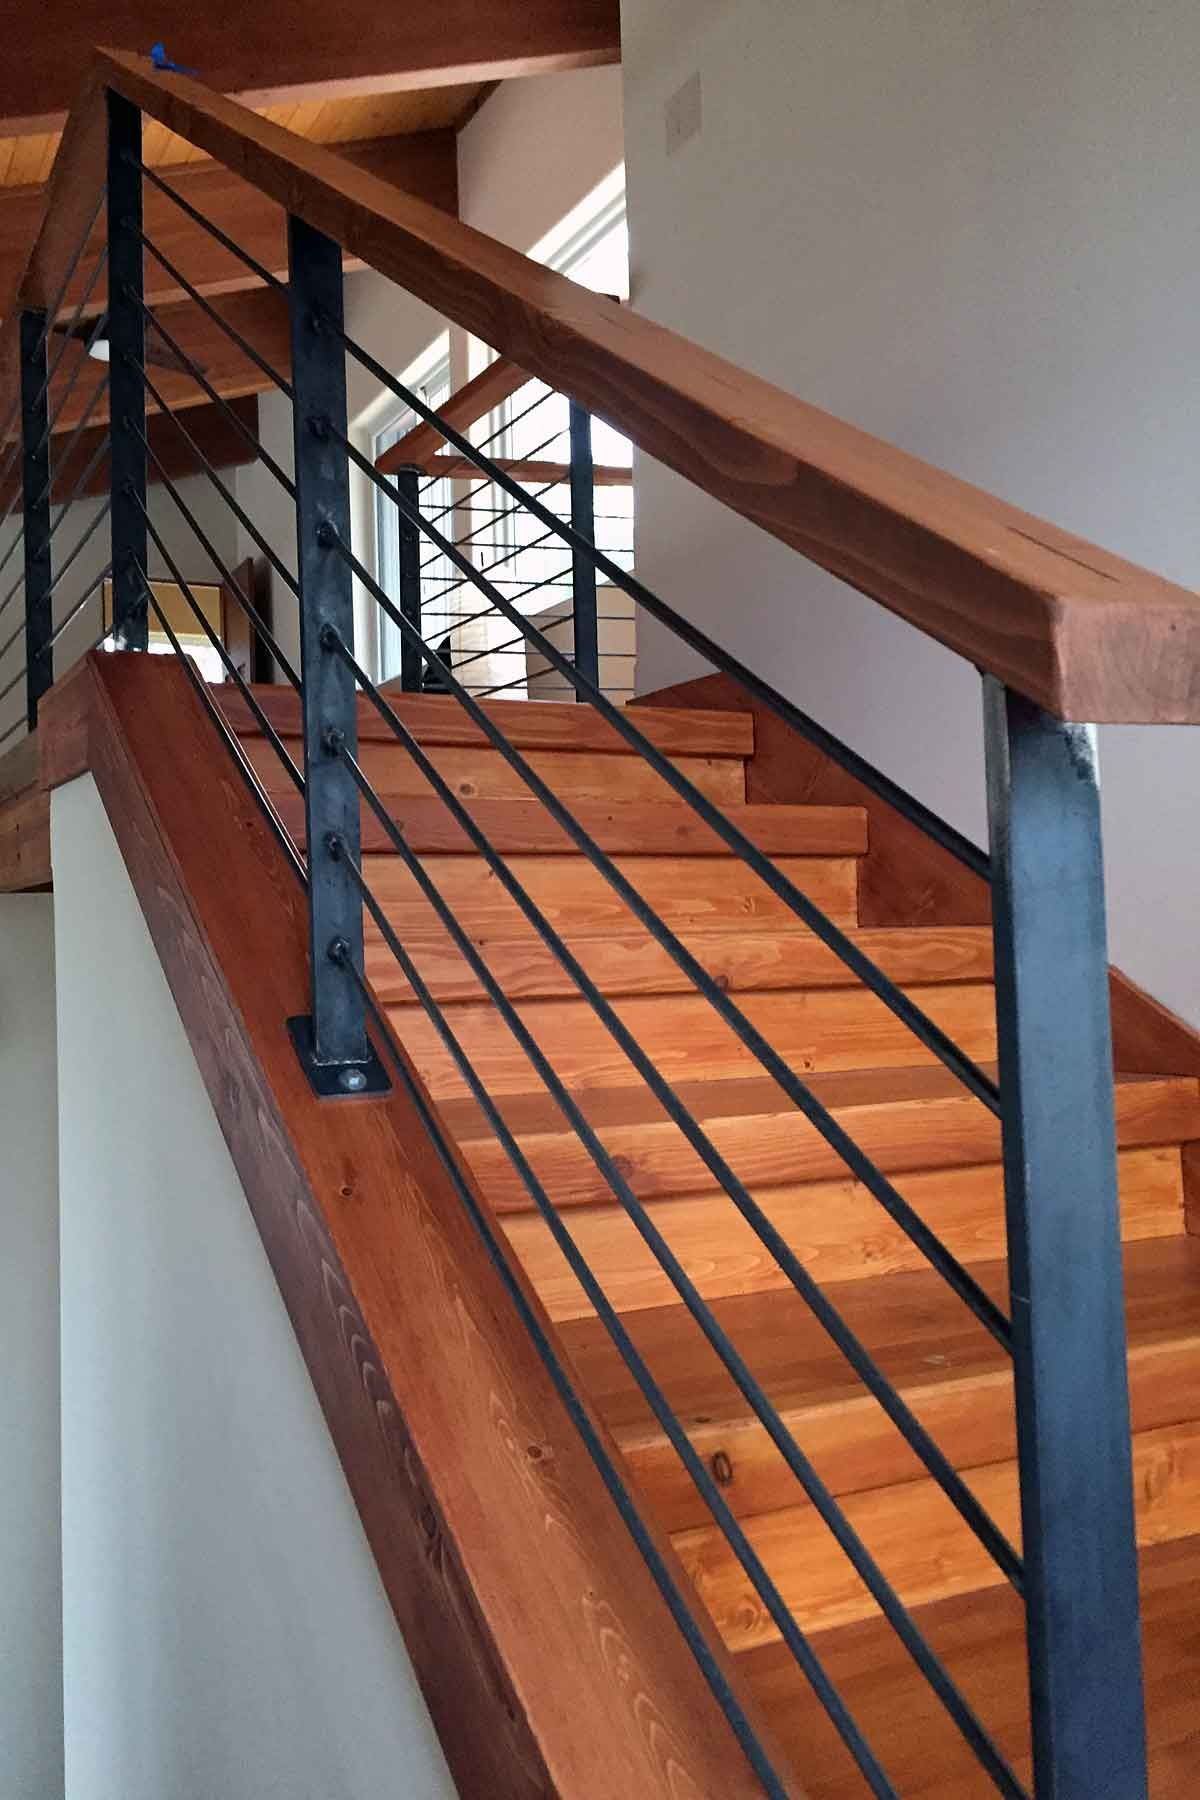 Photo Raw Steel Handrail Featuring Wood Cap Metal Stair | Wood And Metal Handrail | Interior | Iron Railing | Architectural Modern Wood Stair | Stainless Steel | Traditional